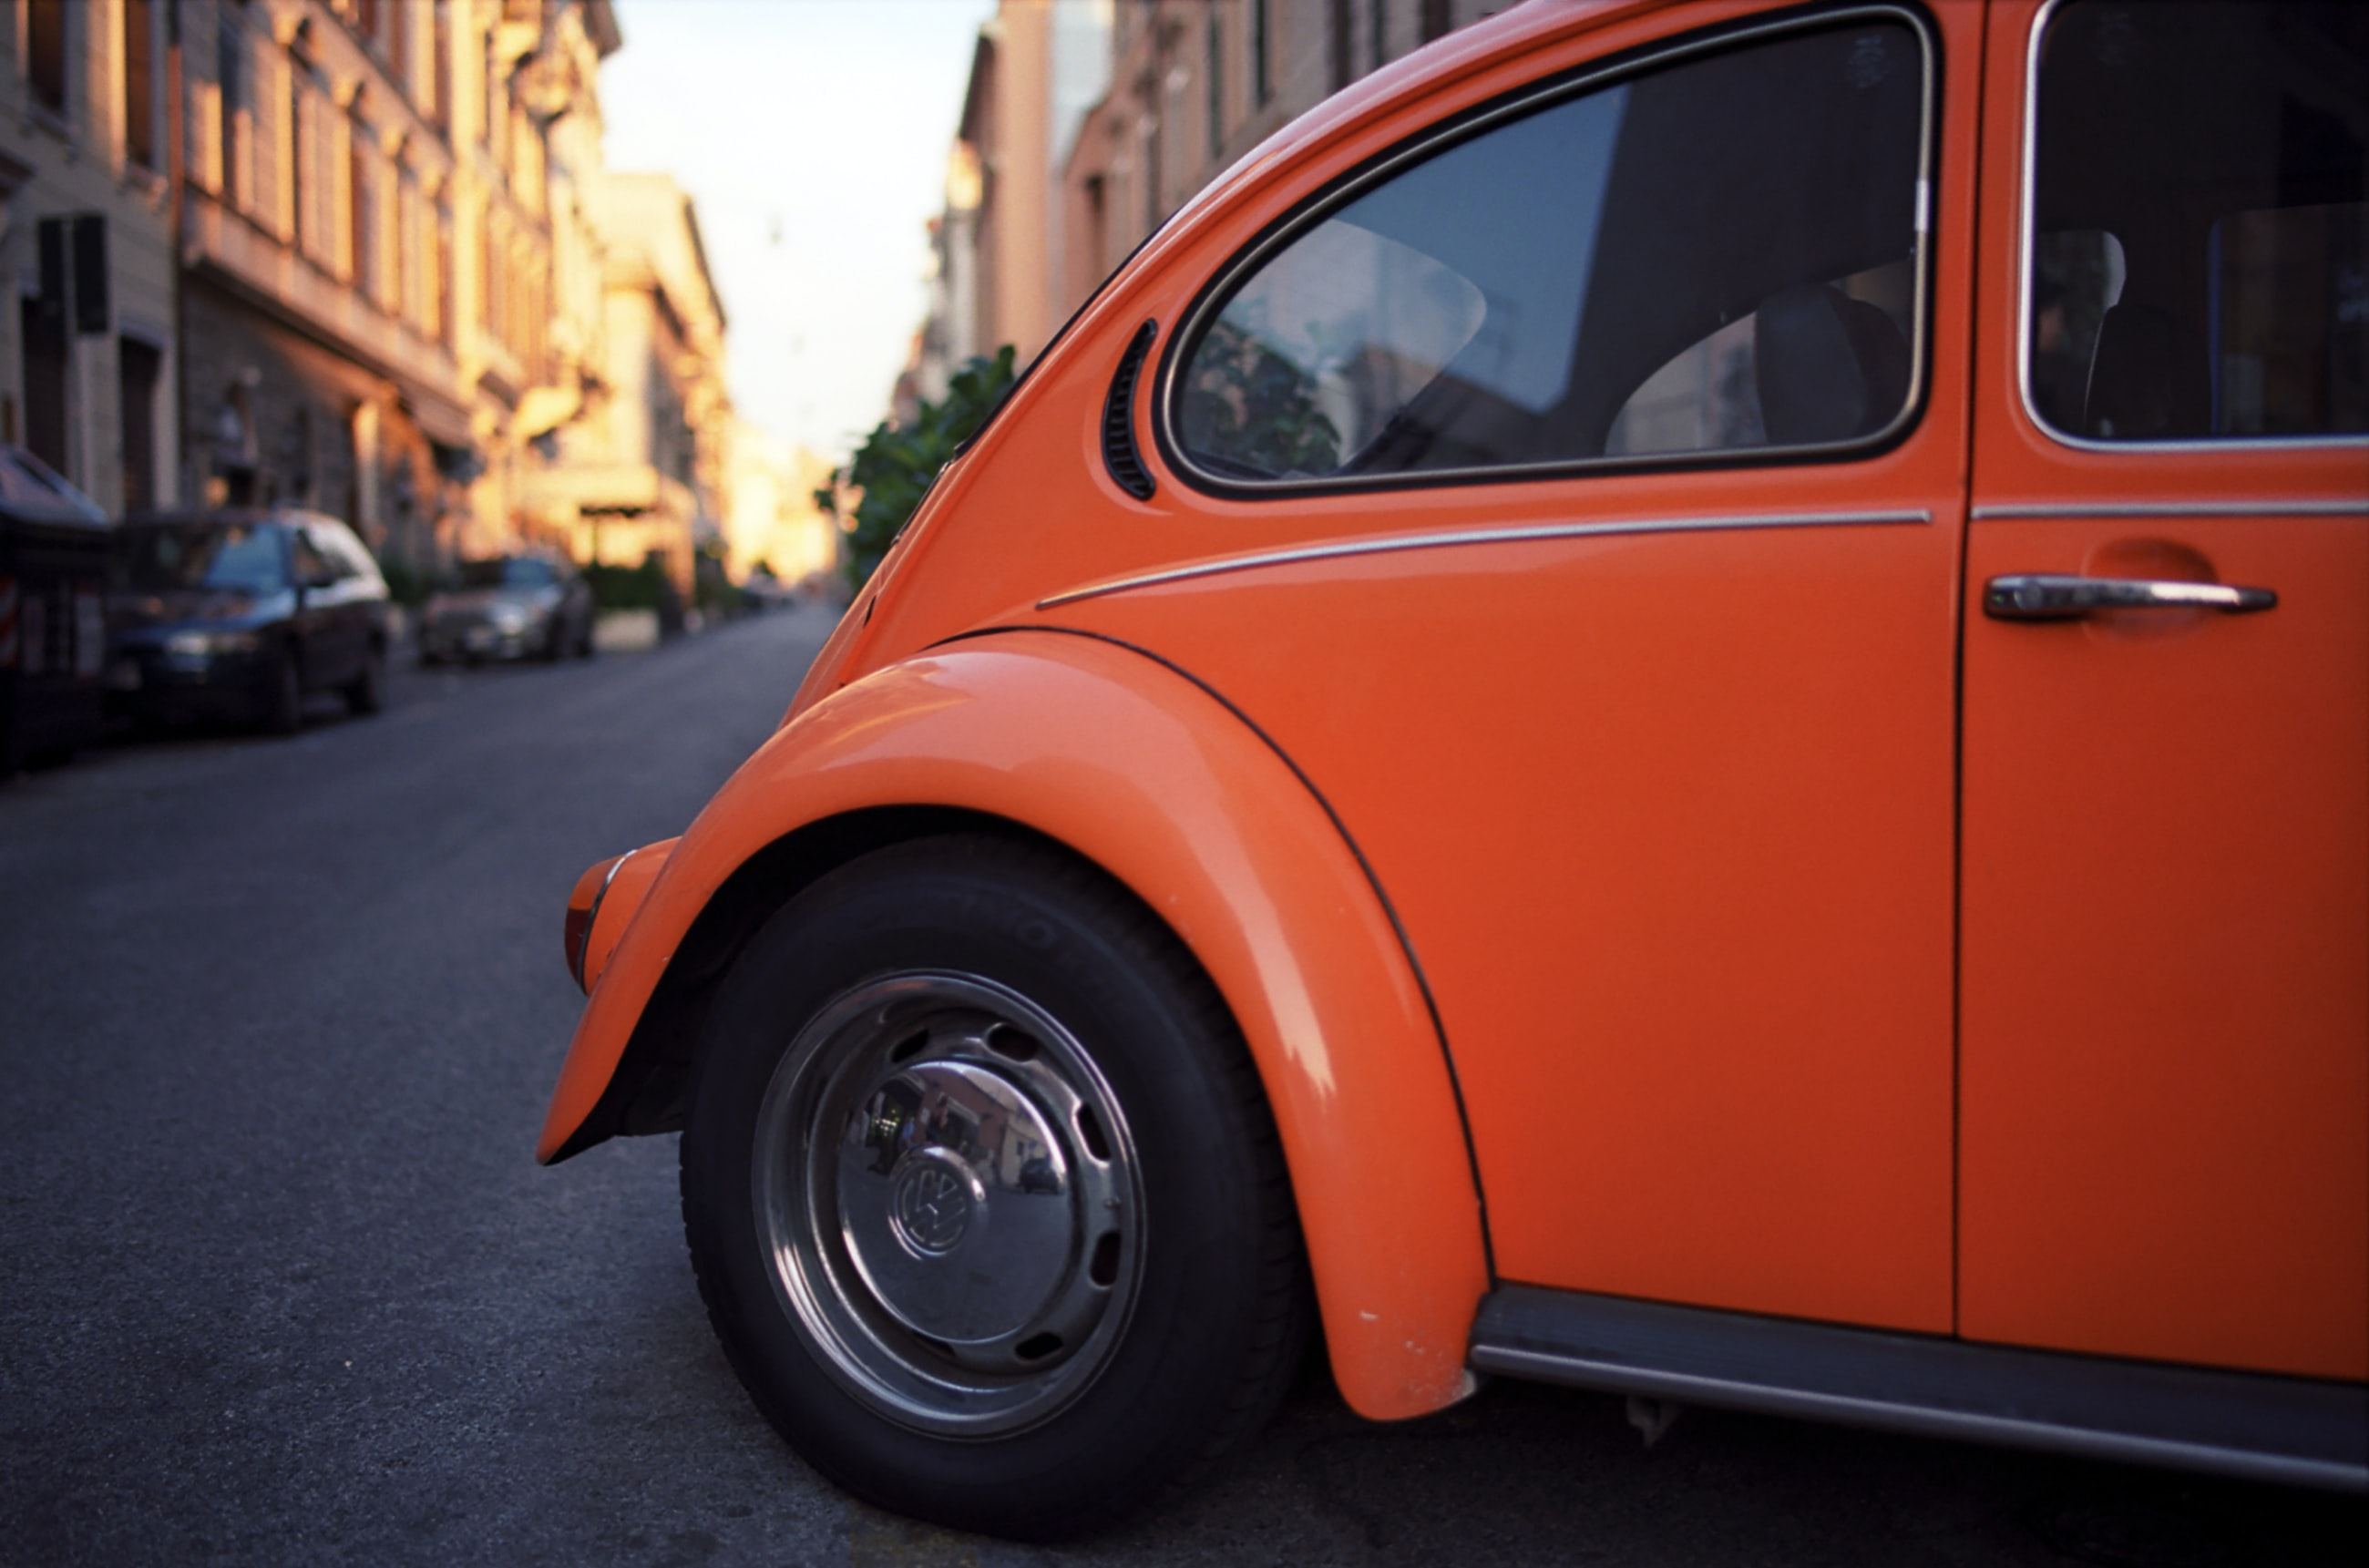 Orange vintage Volkswagen Beetle with a reflection in the back window.